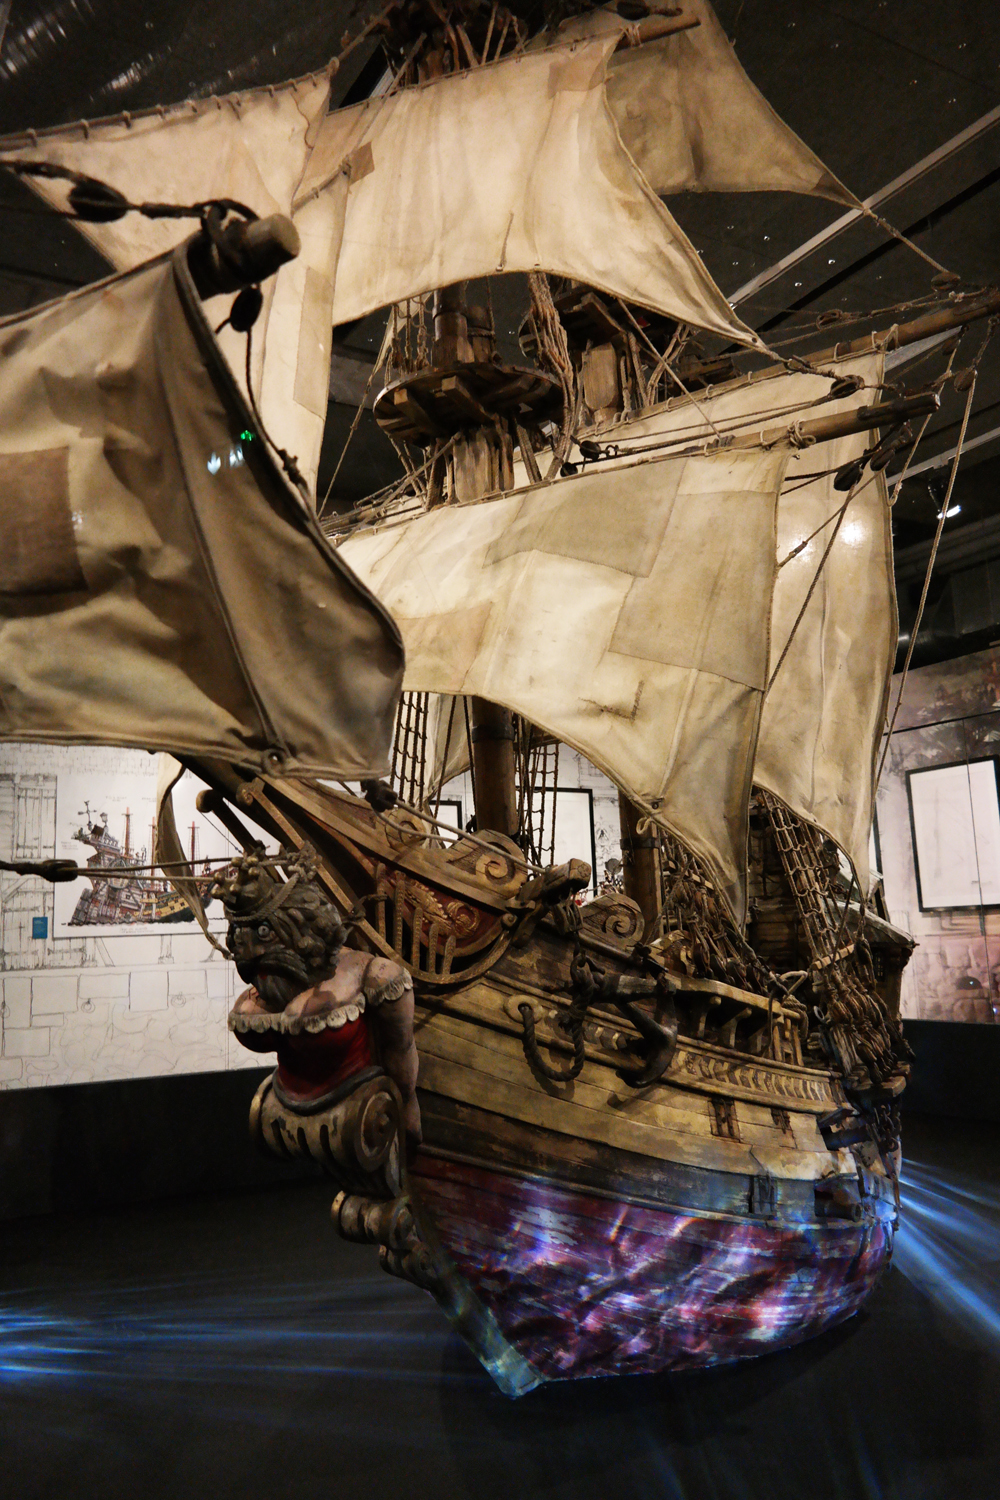 Aardman-exposition-Musée-art-ludique-paris-bateau-The-Pirates-Band-of-Misfits-boat-vessel-ship-set-phot-united-states-of-paris-blog